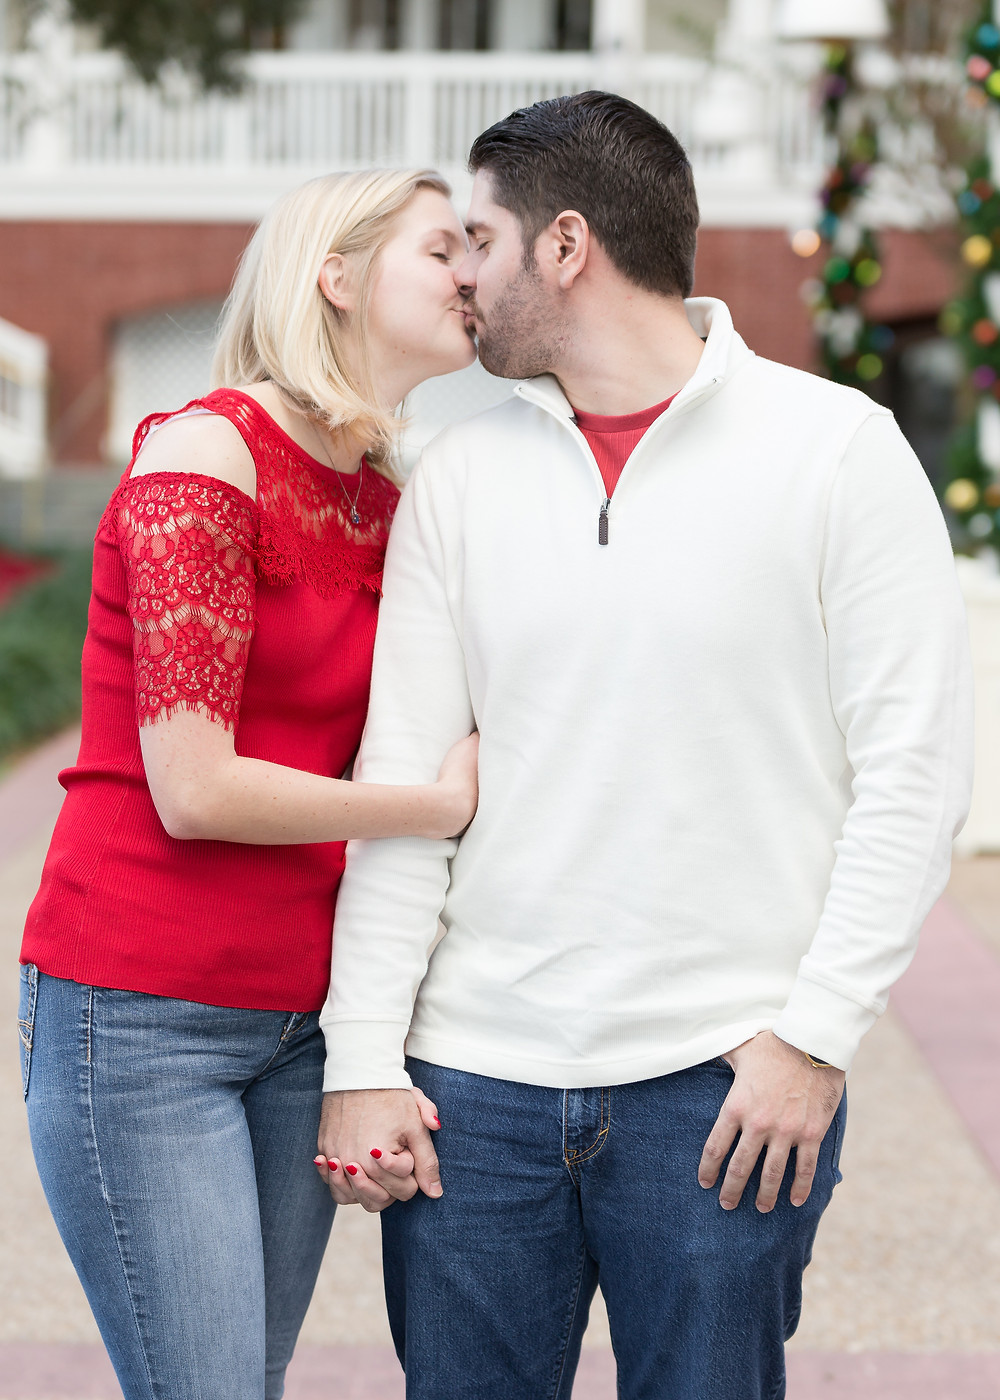 Couple kissing in red short in orlando photographer wedding.